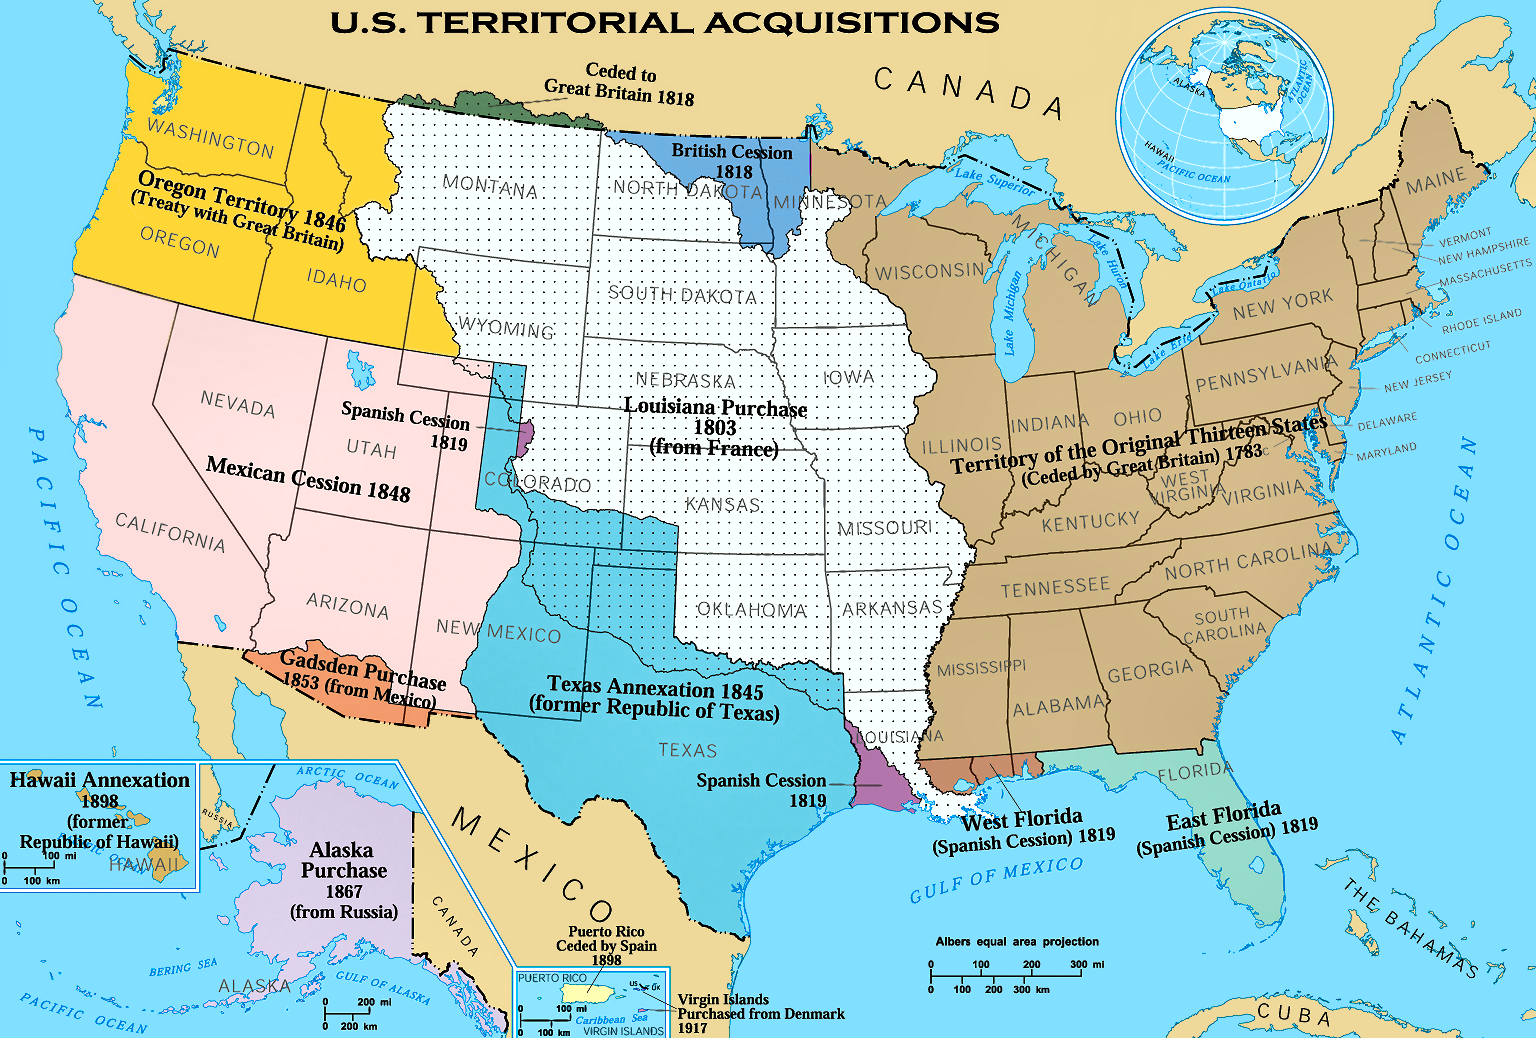 FileUS Territorial Acquisitionspng Wikimedia Commons - Wikimedia commons us maps most popular